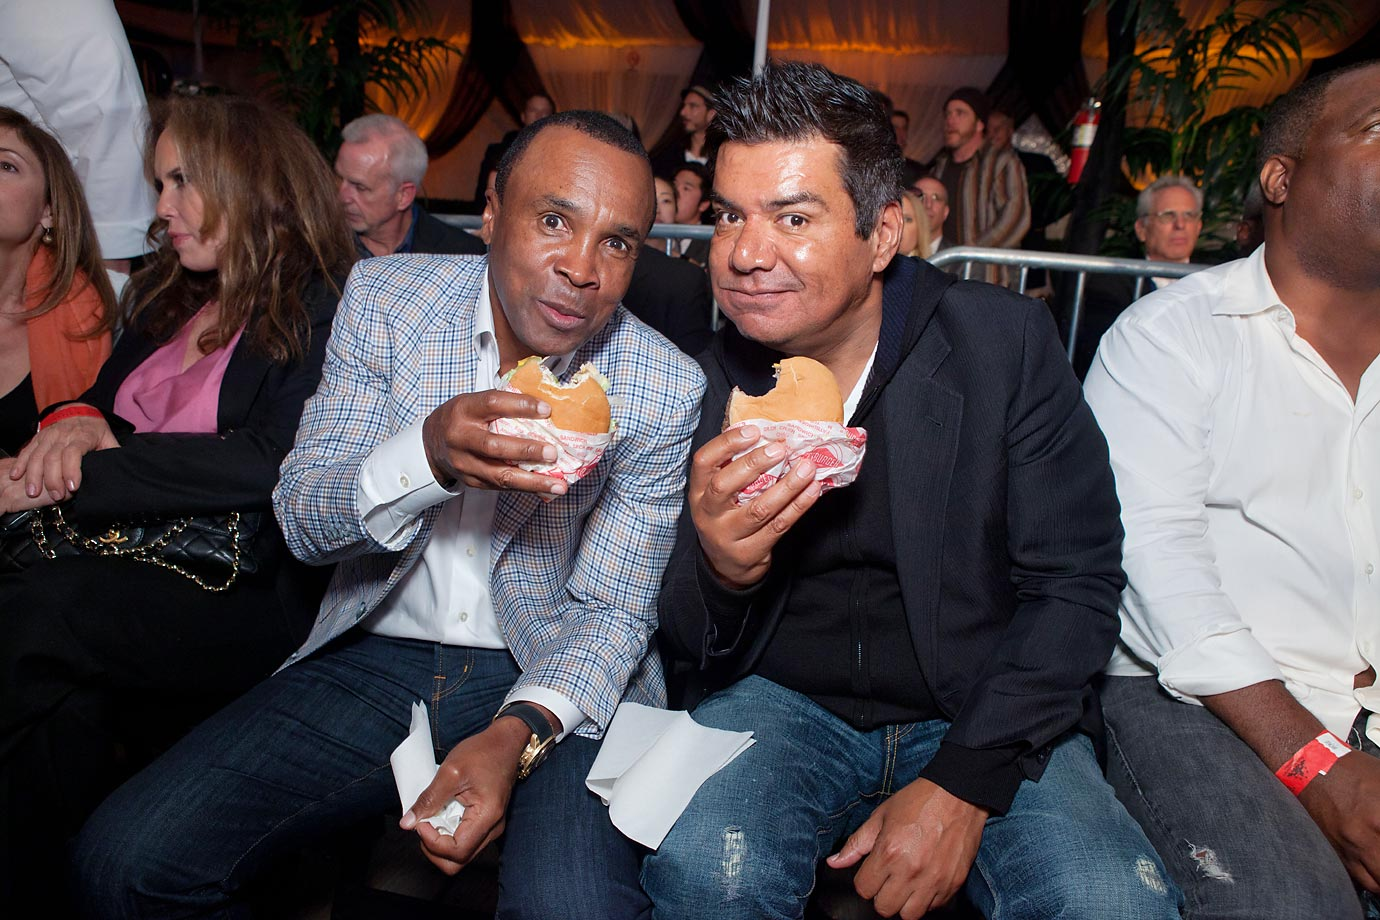 Sugar Ray Leonard and George Lopez enjoy a FatBurger at Sugar Ray Leonard's 3rd Annual Charity Boxing Night.